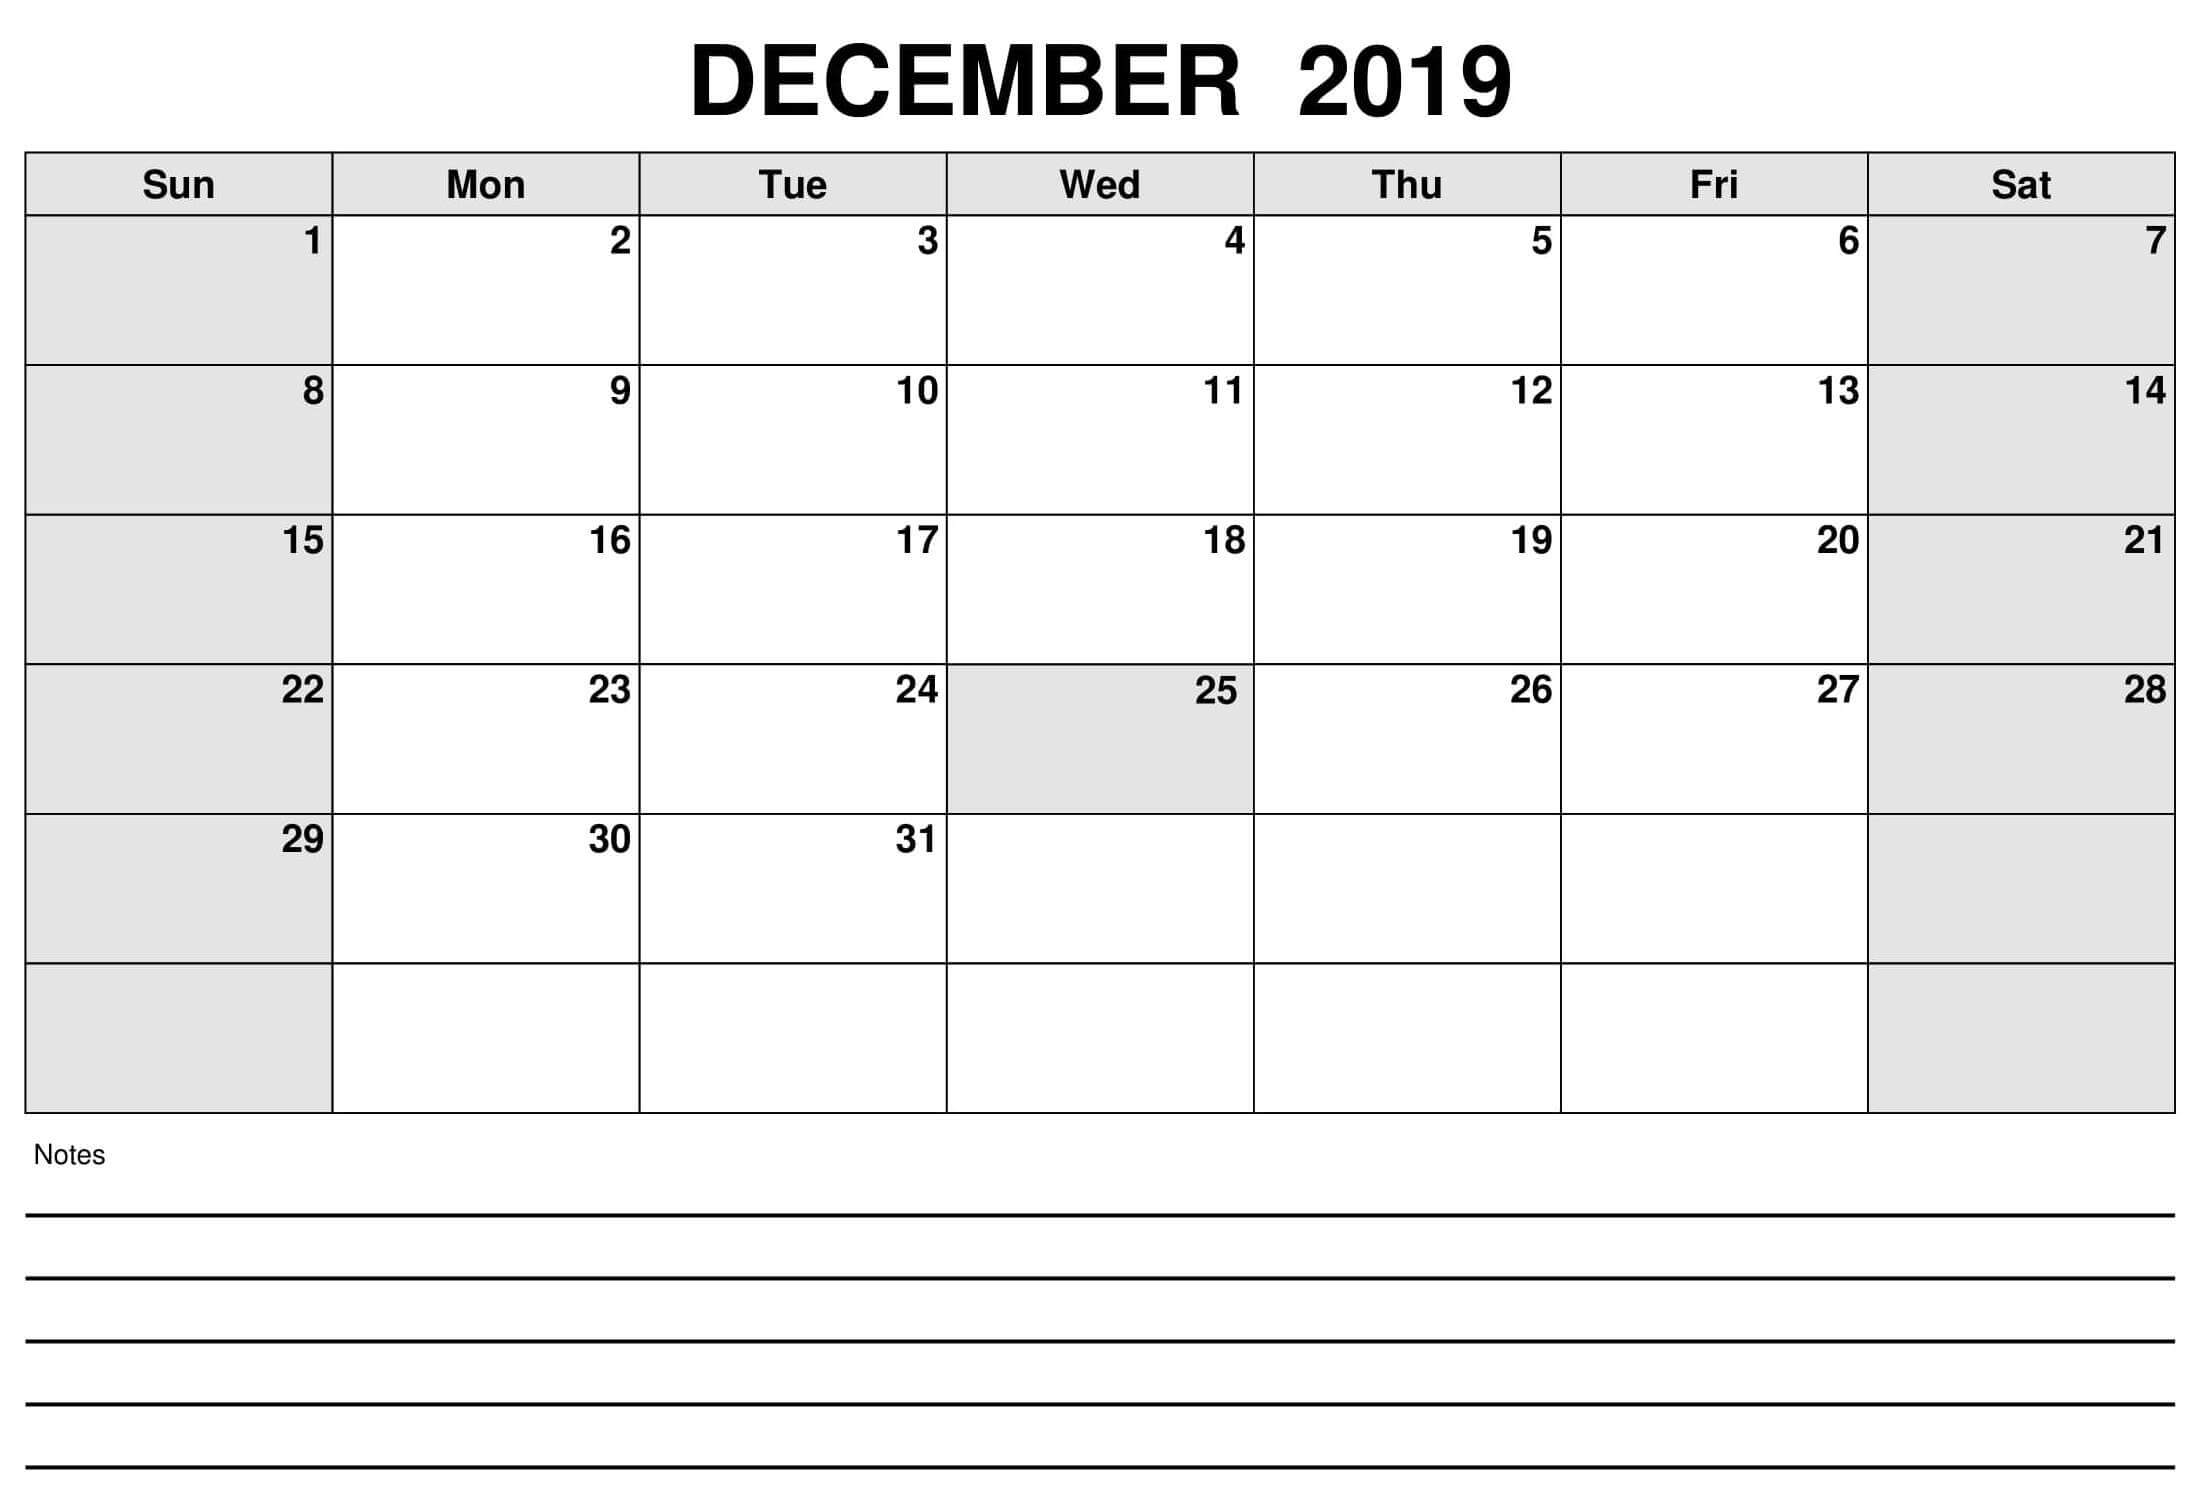 December 2019 Calendar Excel Worksheet